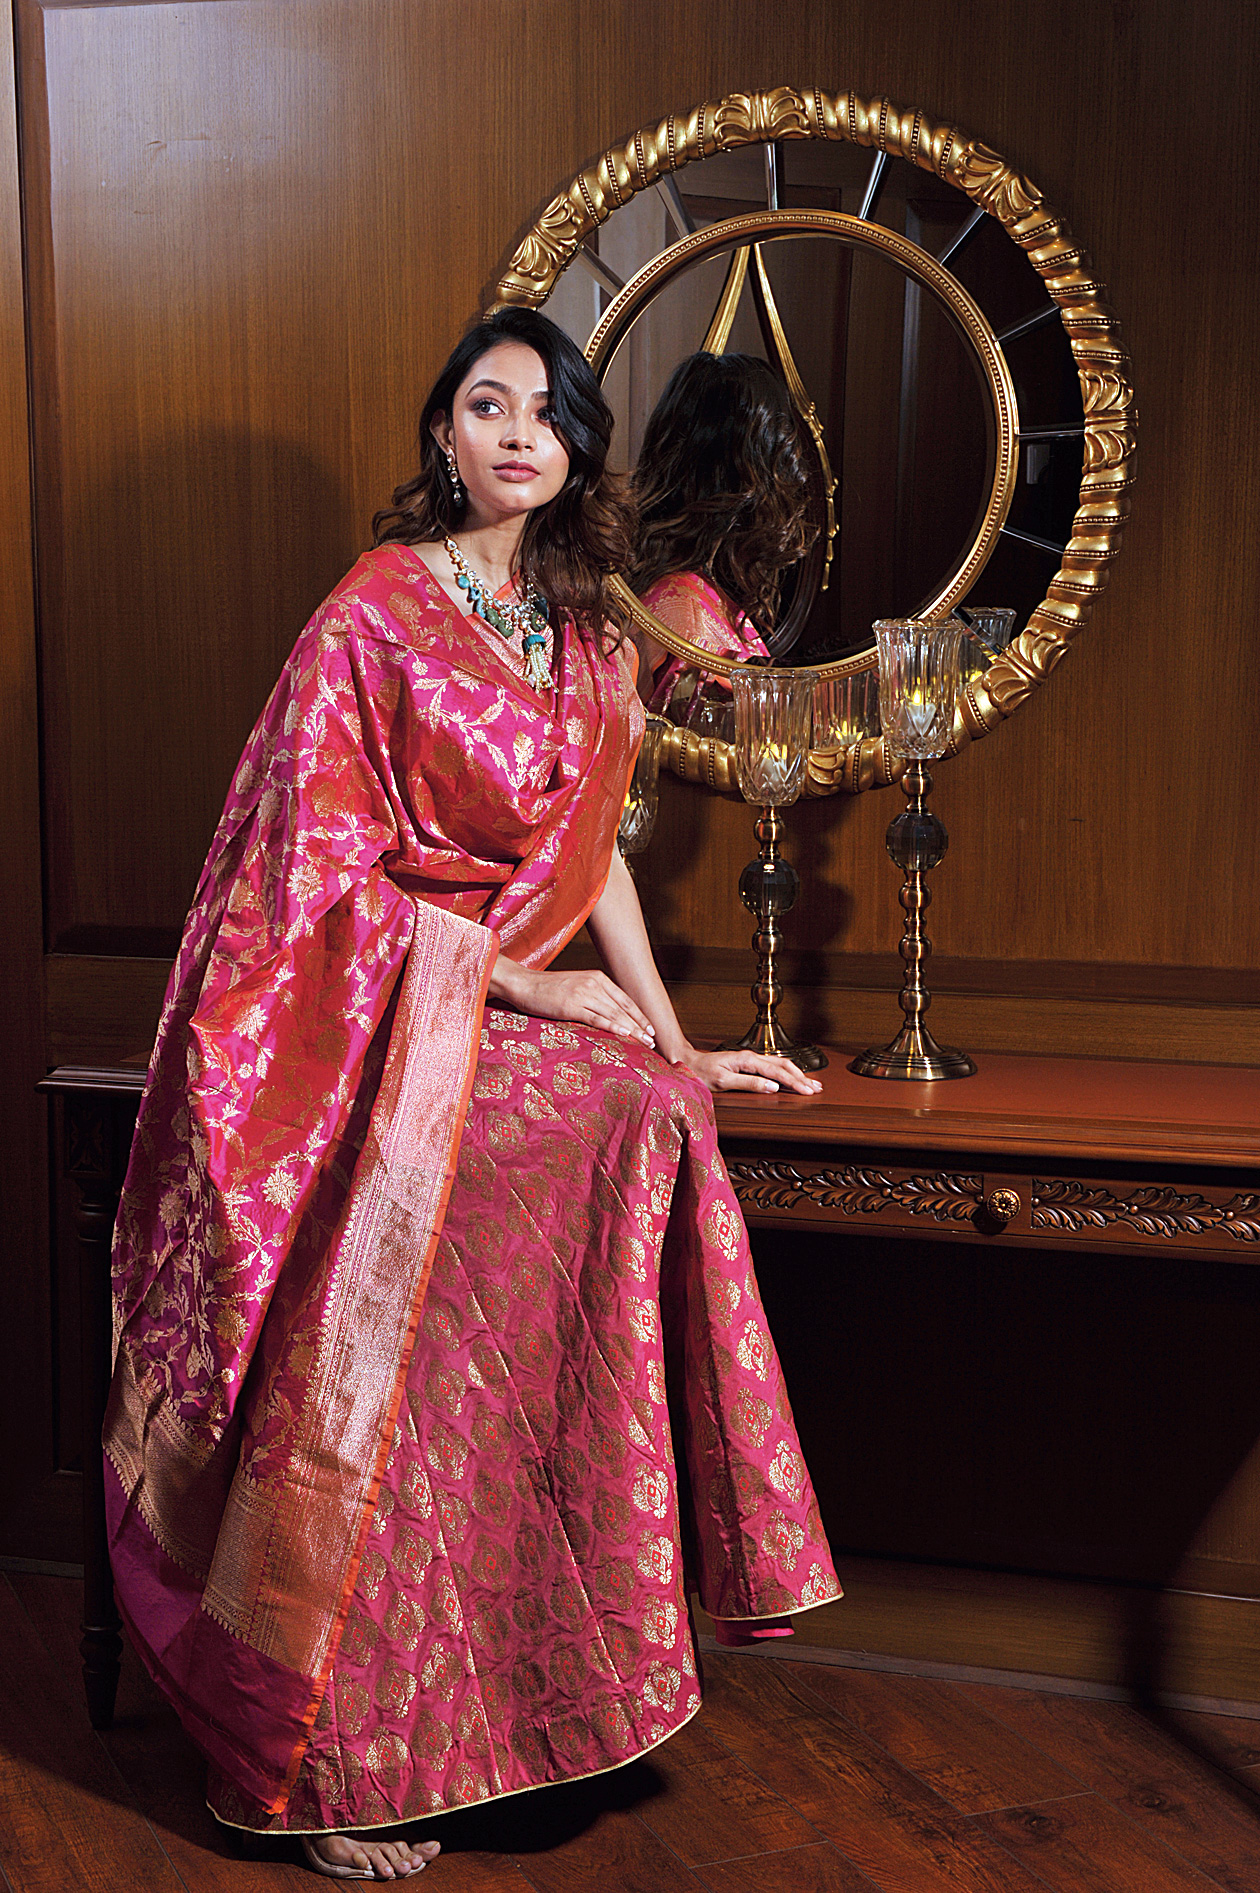 """PINK PRETTY: Not in the mood for a sari but want to dress ethnic? This pink brocade kali skirt with Persian motifs is a good bet. It is paired with a gold blouse and a dupatta in the same hue with """"kadwa"""" weave in """"phool-patti"""" motifs. If you want a more casual look, team the skirt with a black crop top and you're party ready"""